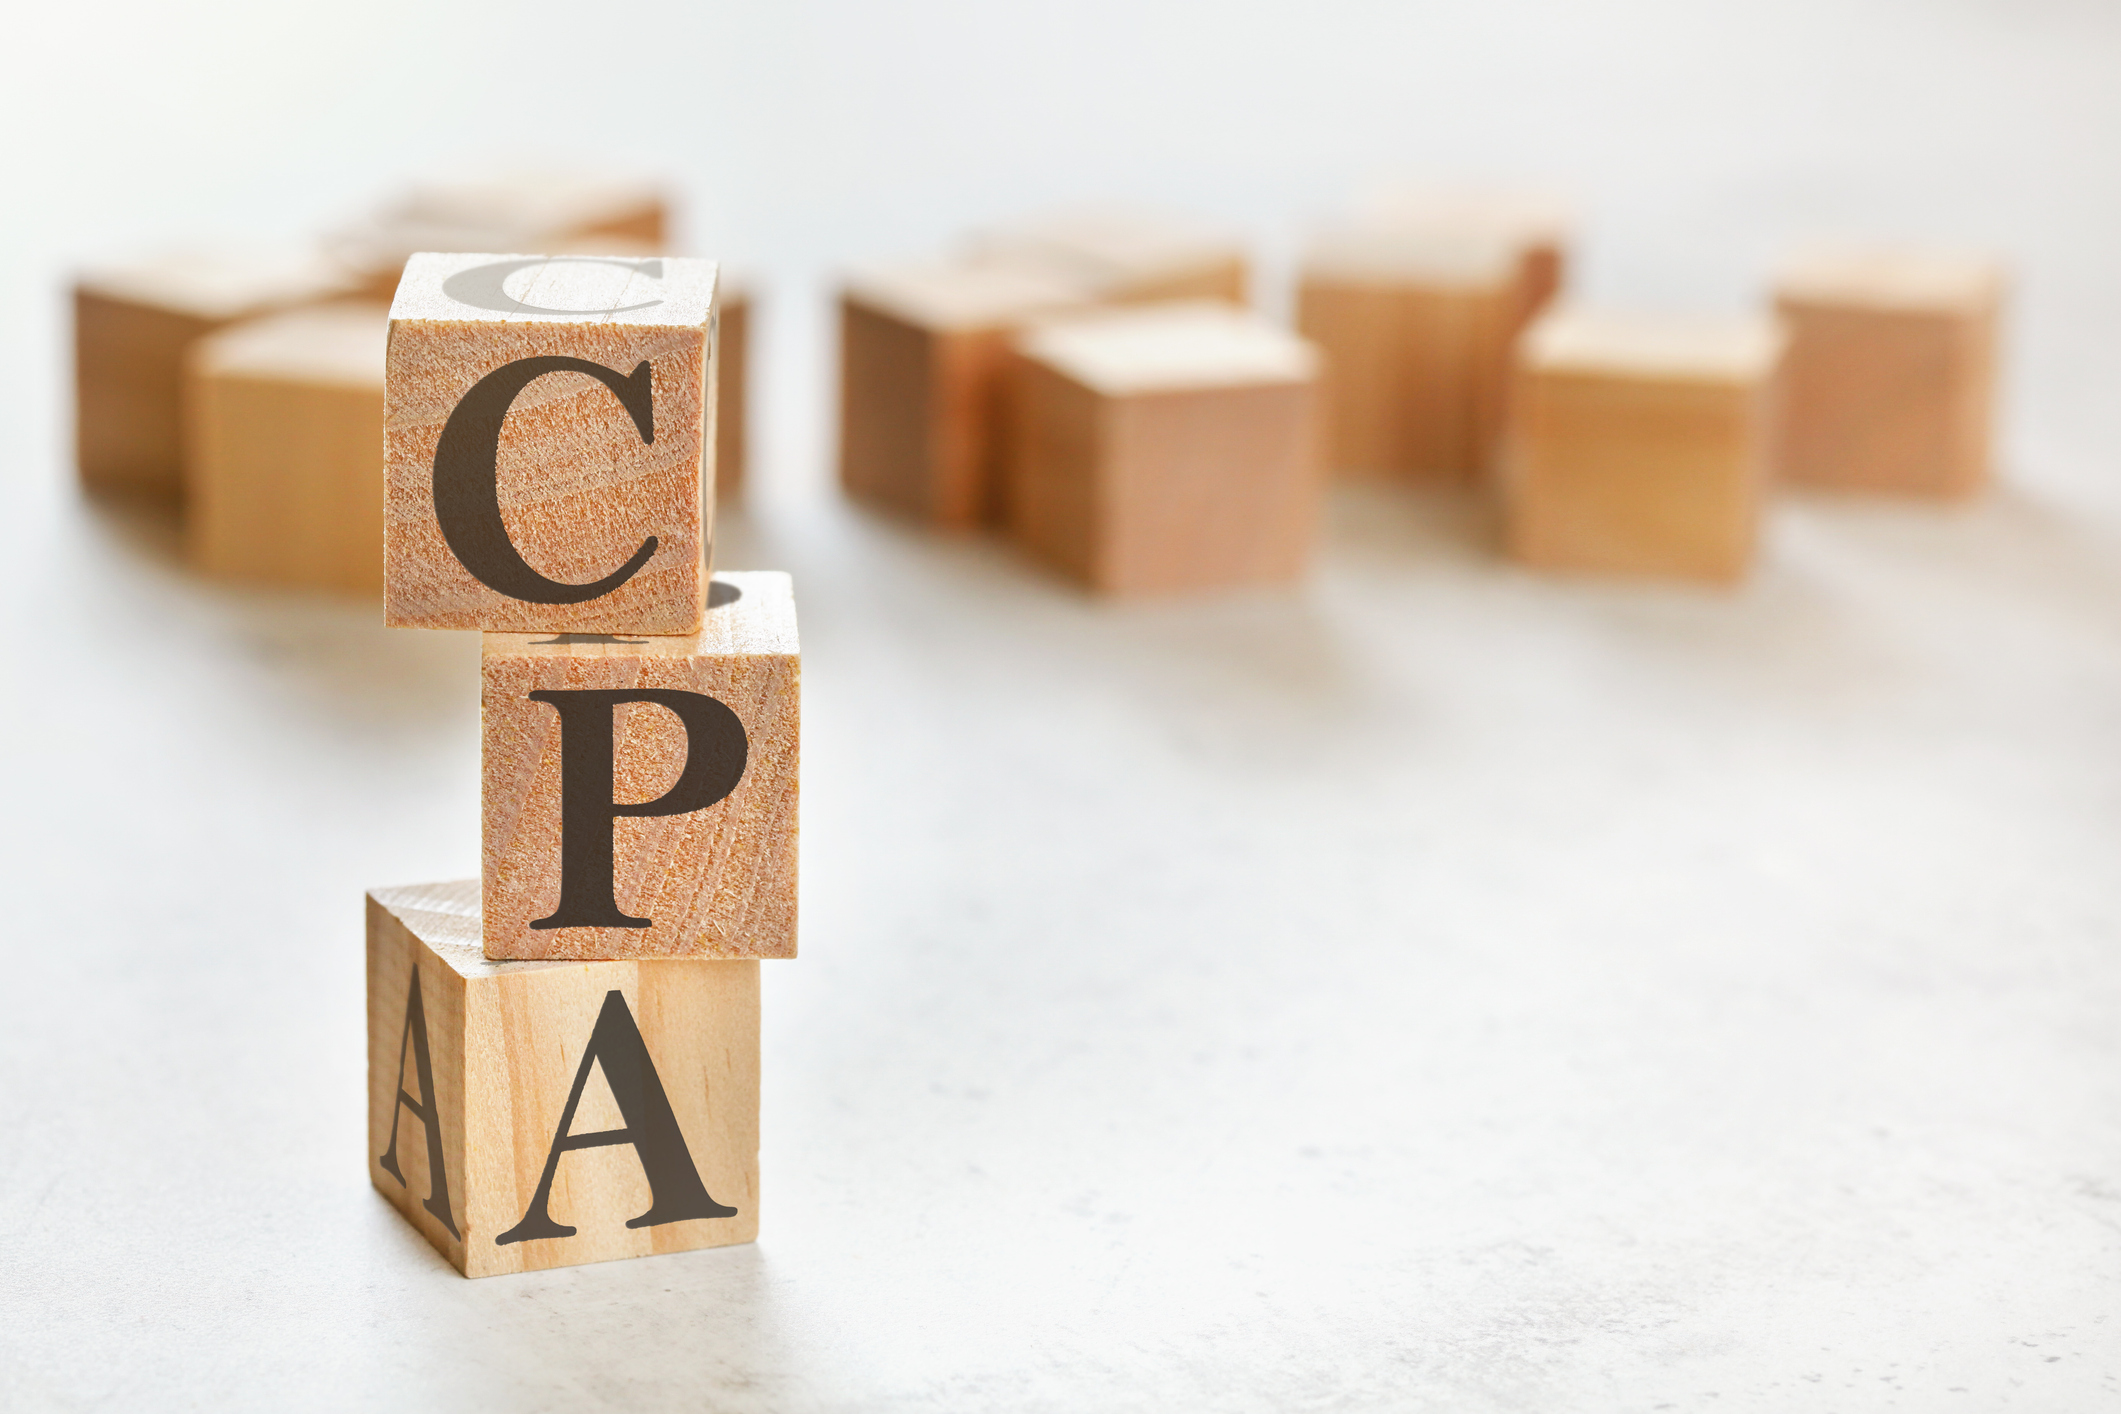 CPA Tasks - Complete Controller